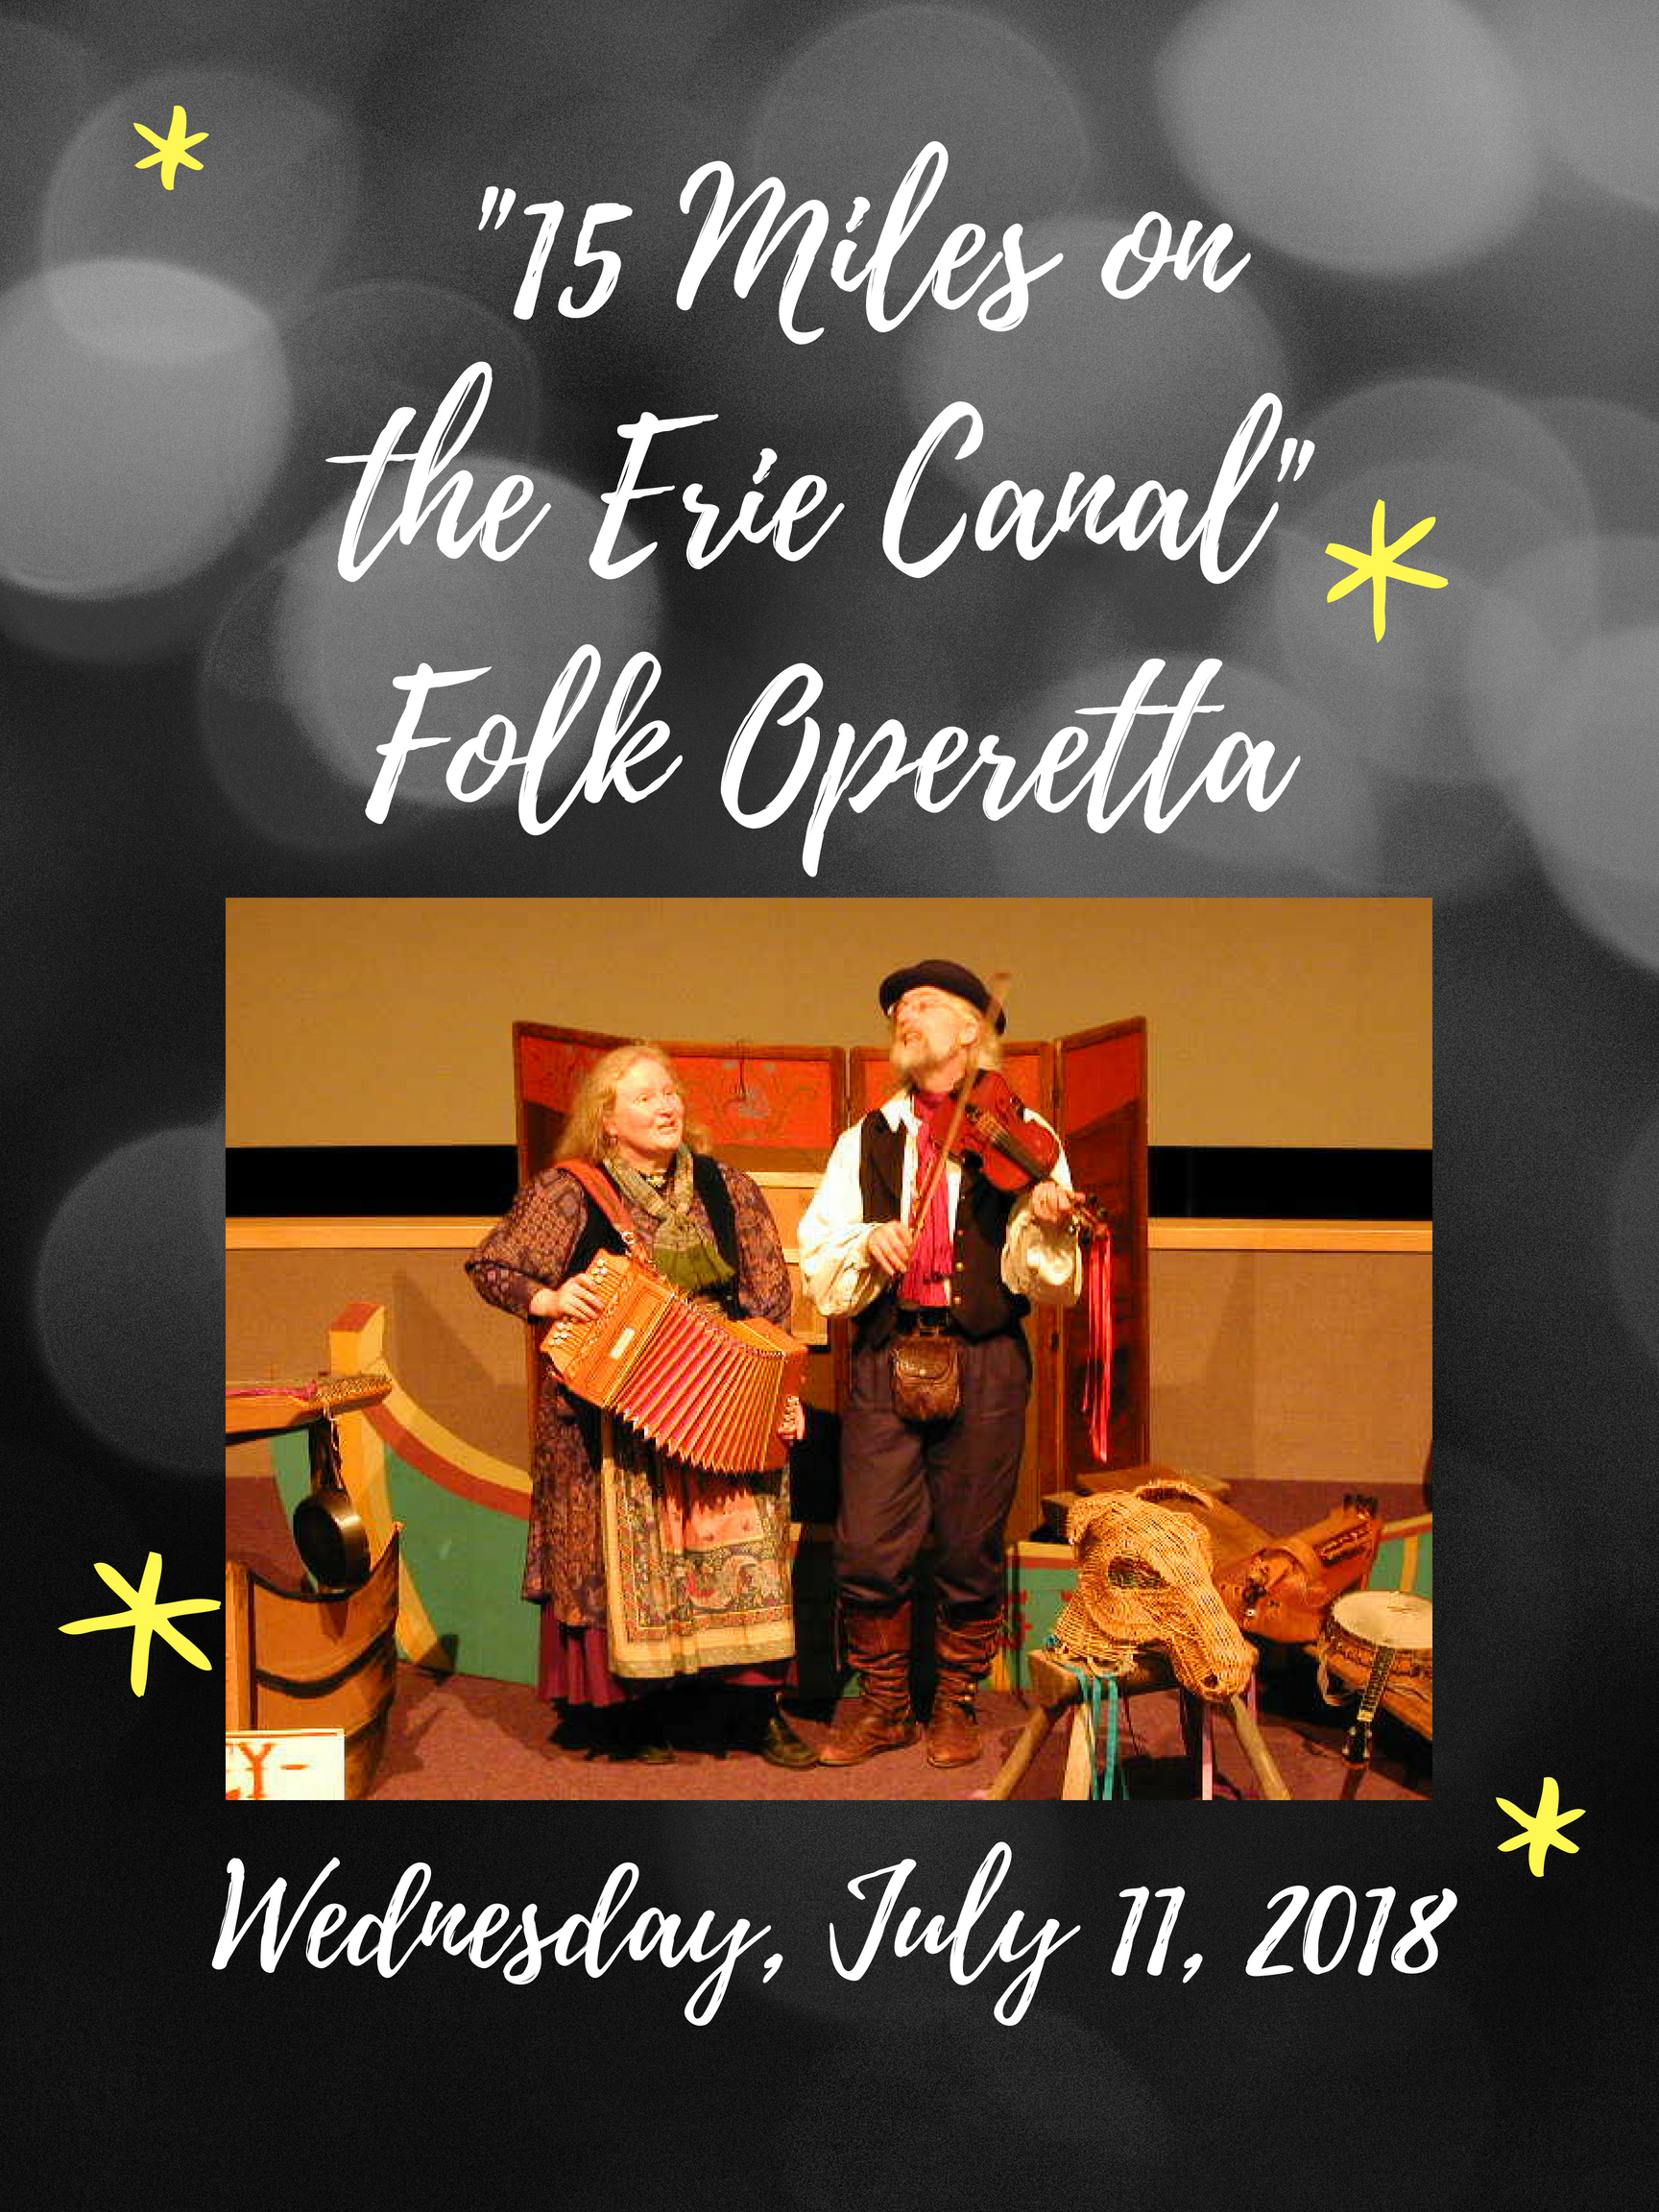 15 Miles on the Erie Canal: Interactive Operetta